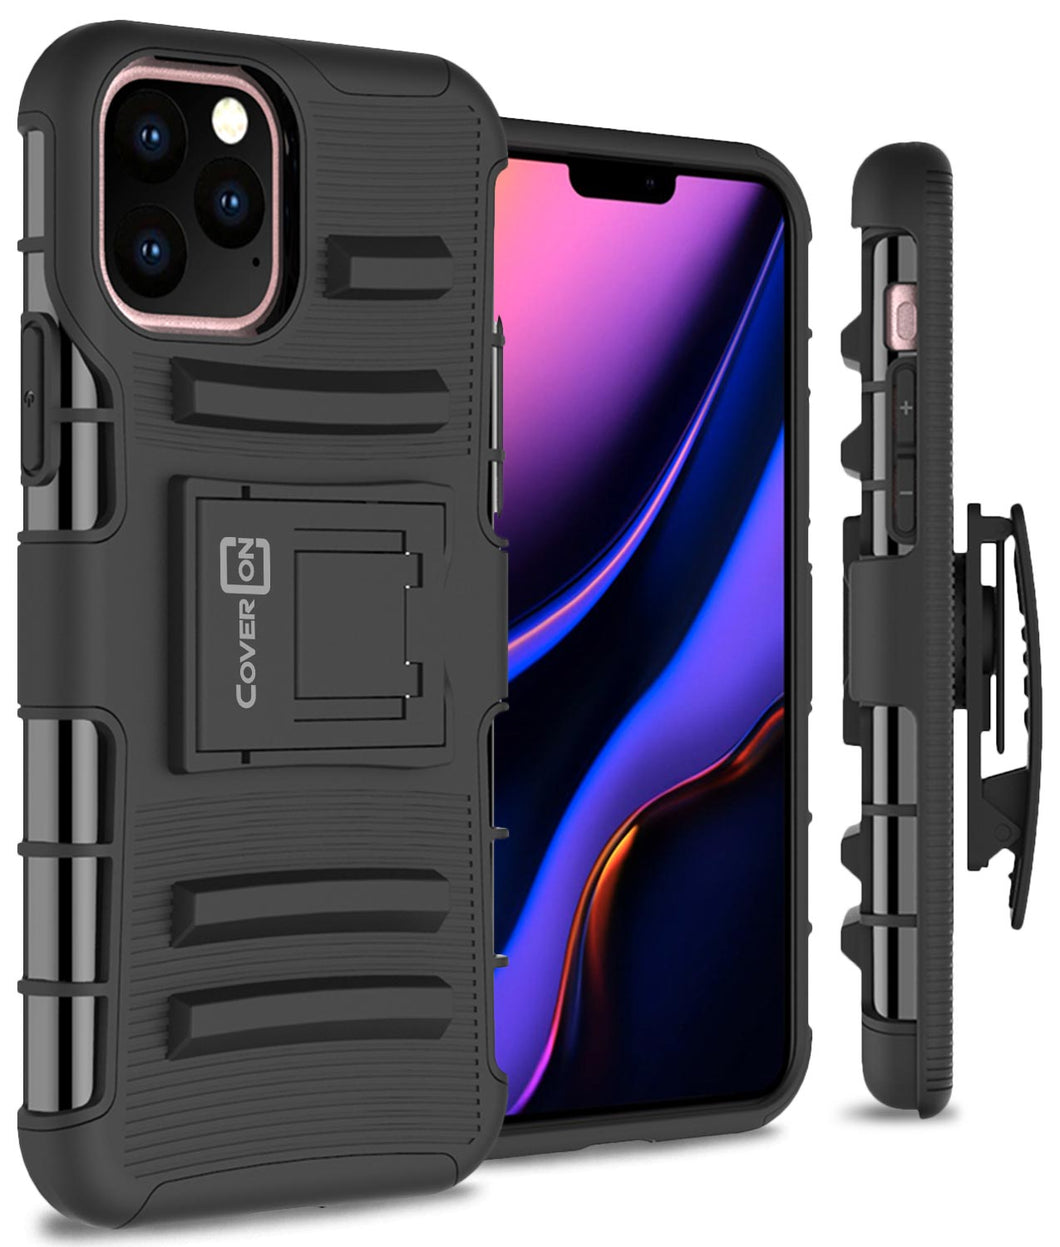 iPhone 11 Pro Max Holster Case - Hybrid Case with Belt Clip - Explorer Series